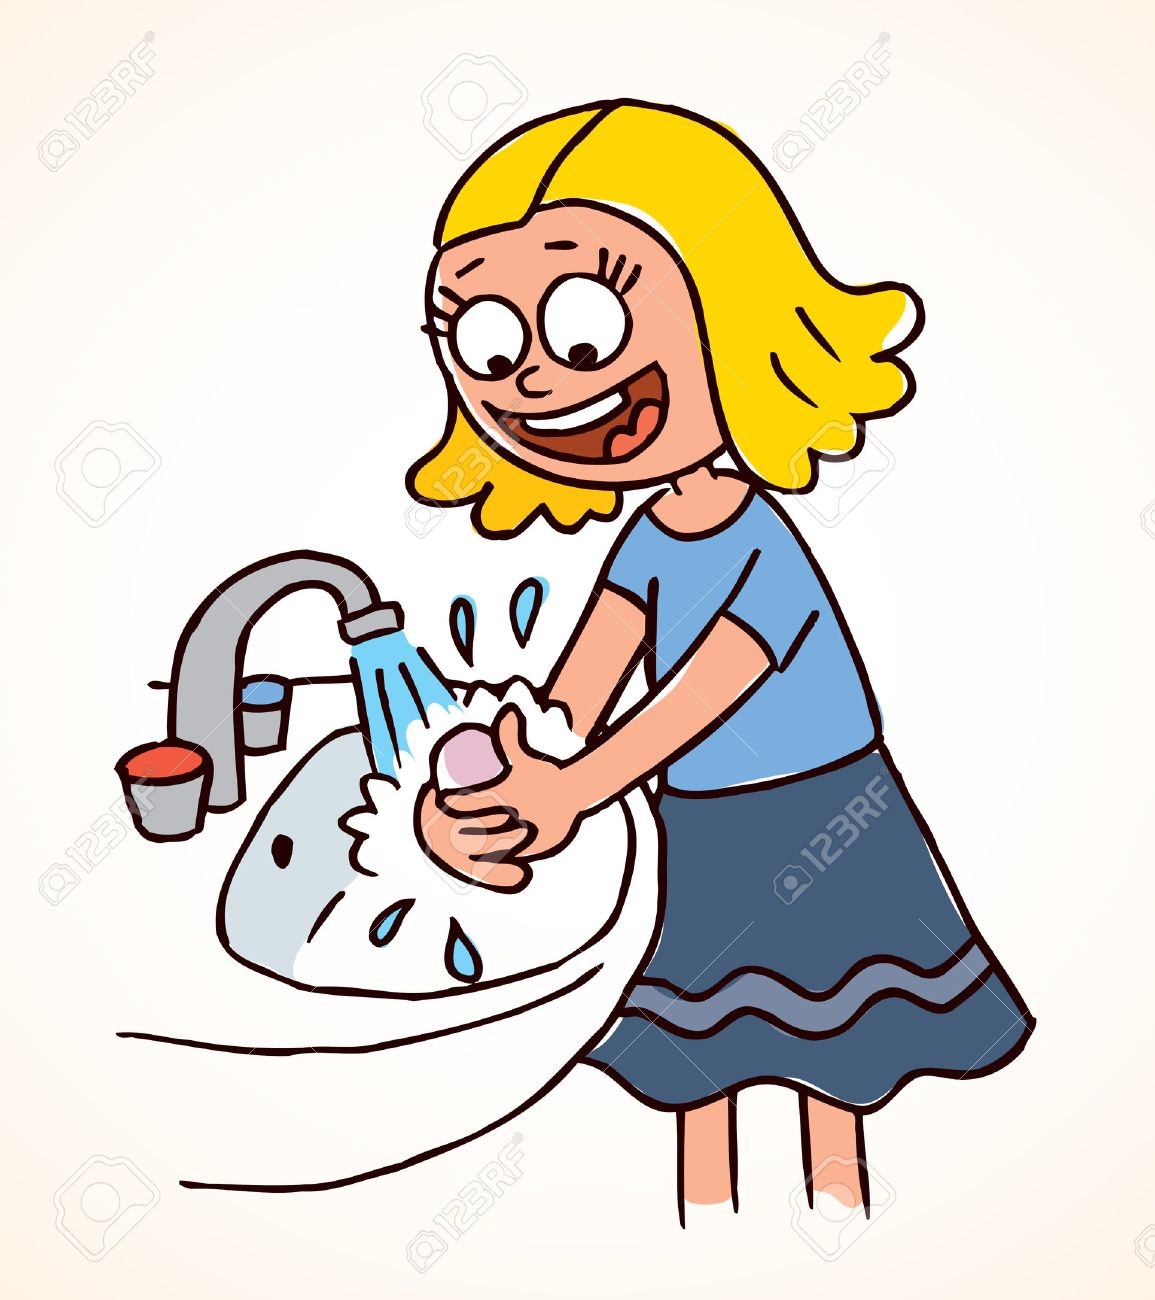 Wash your hands clipart 5 » Clipart Station.